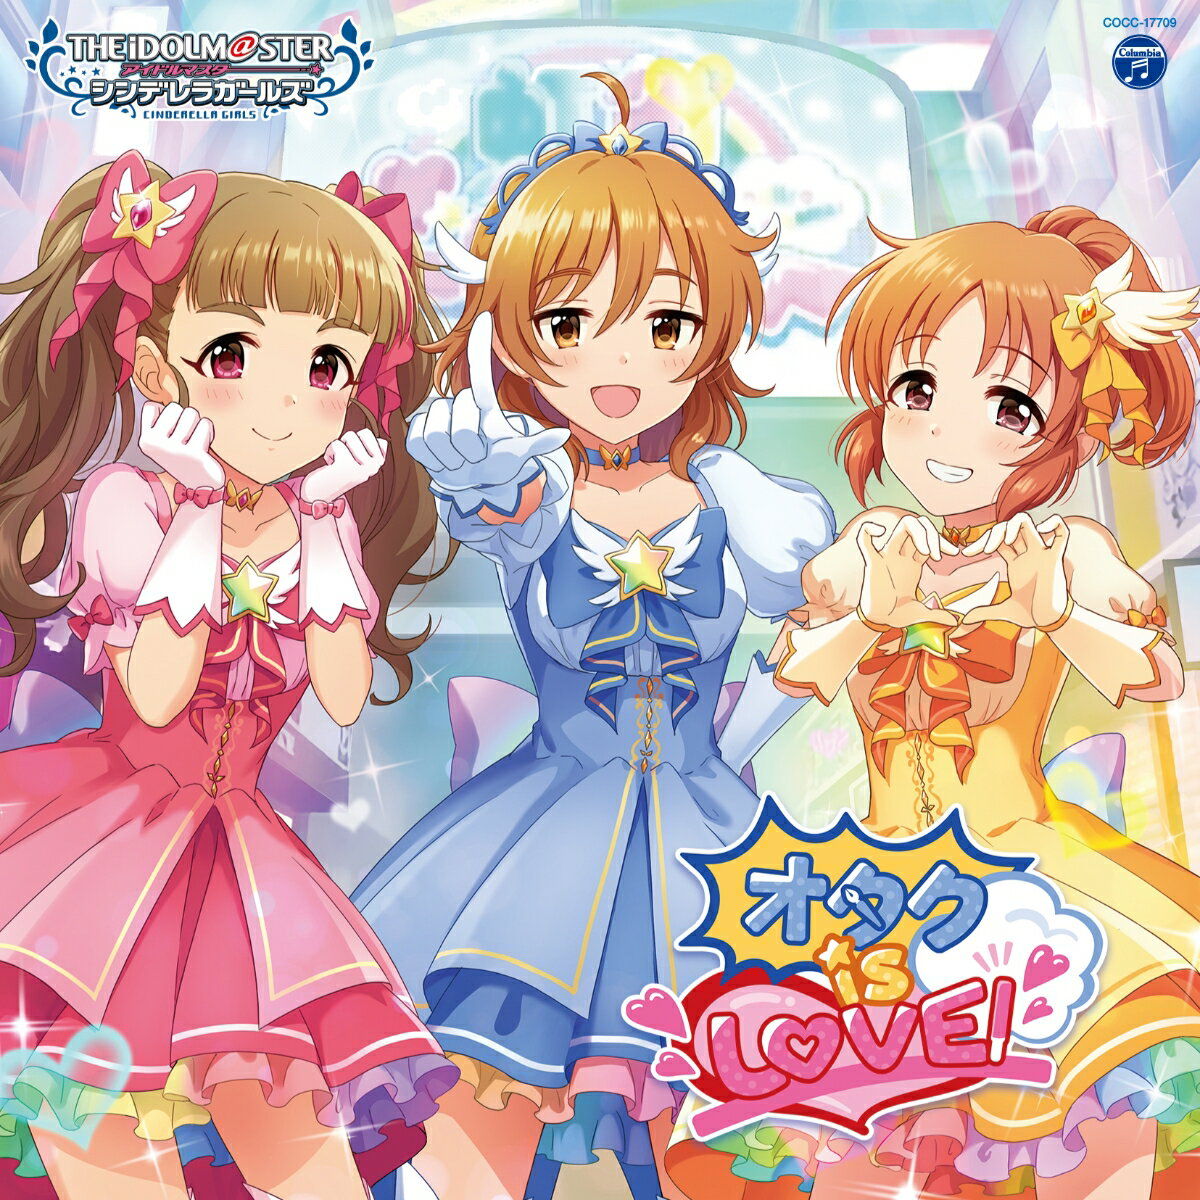 CD, ゲームミュージック THE IDOLMSTER CINDERELLA GIRLS STARLIGHT MASTER for the NEXT! 09 is LOVE!() ()